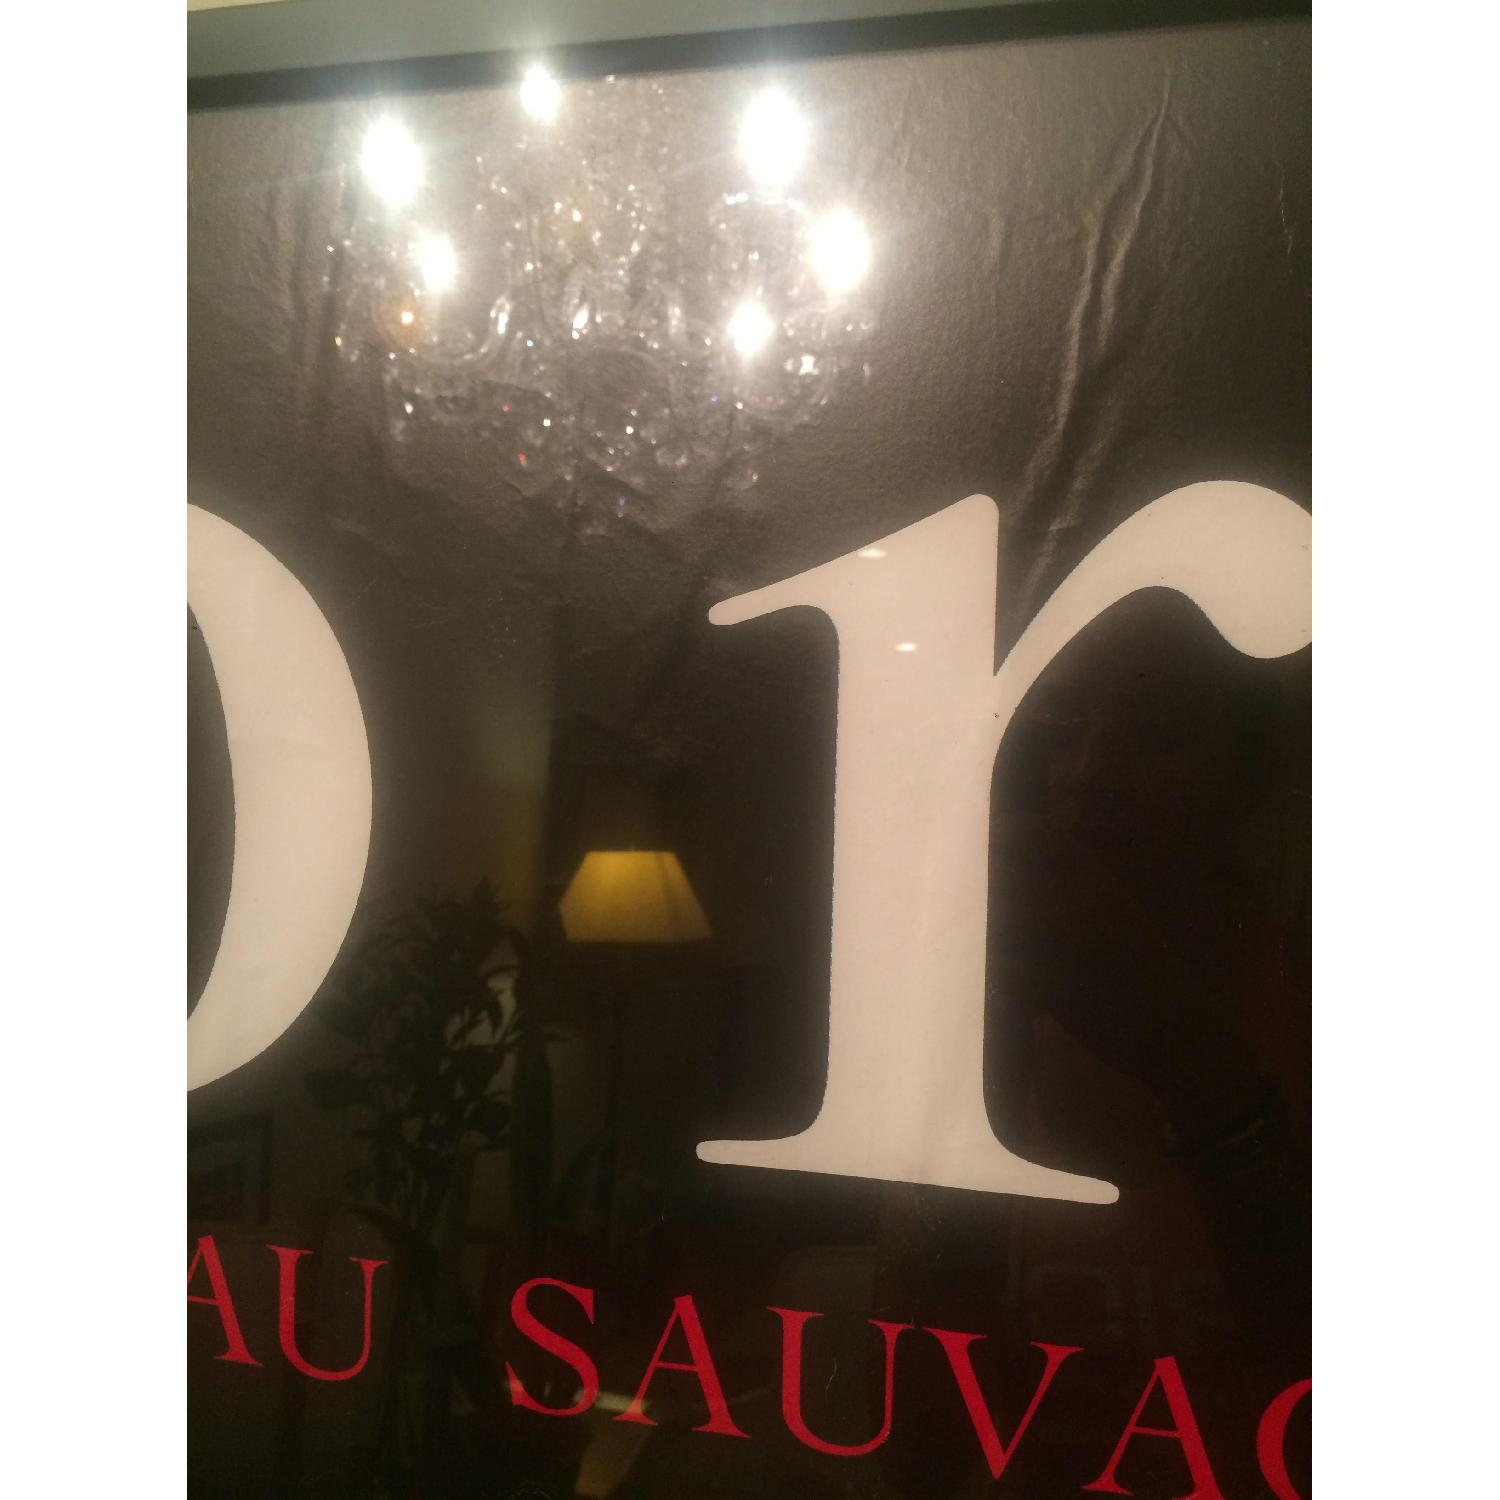 Original Vintage French Poster - Fragrance 80's Dior-Eau Sauvage - image-4